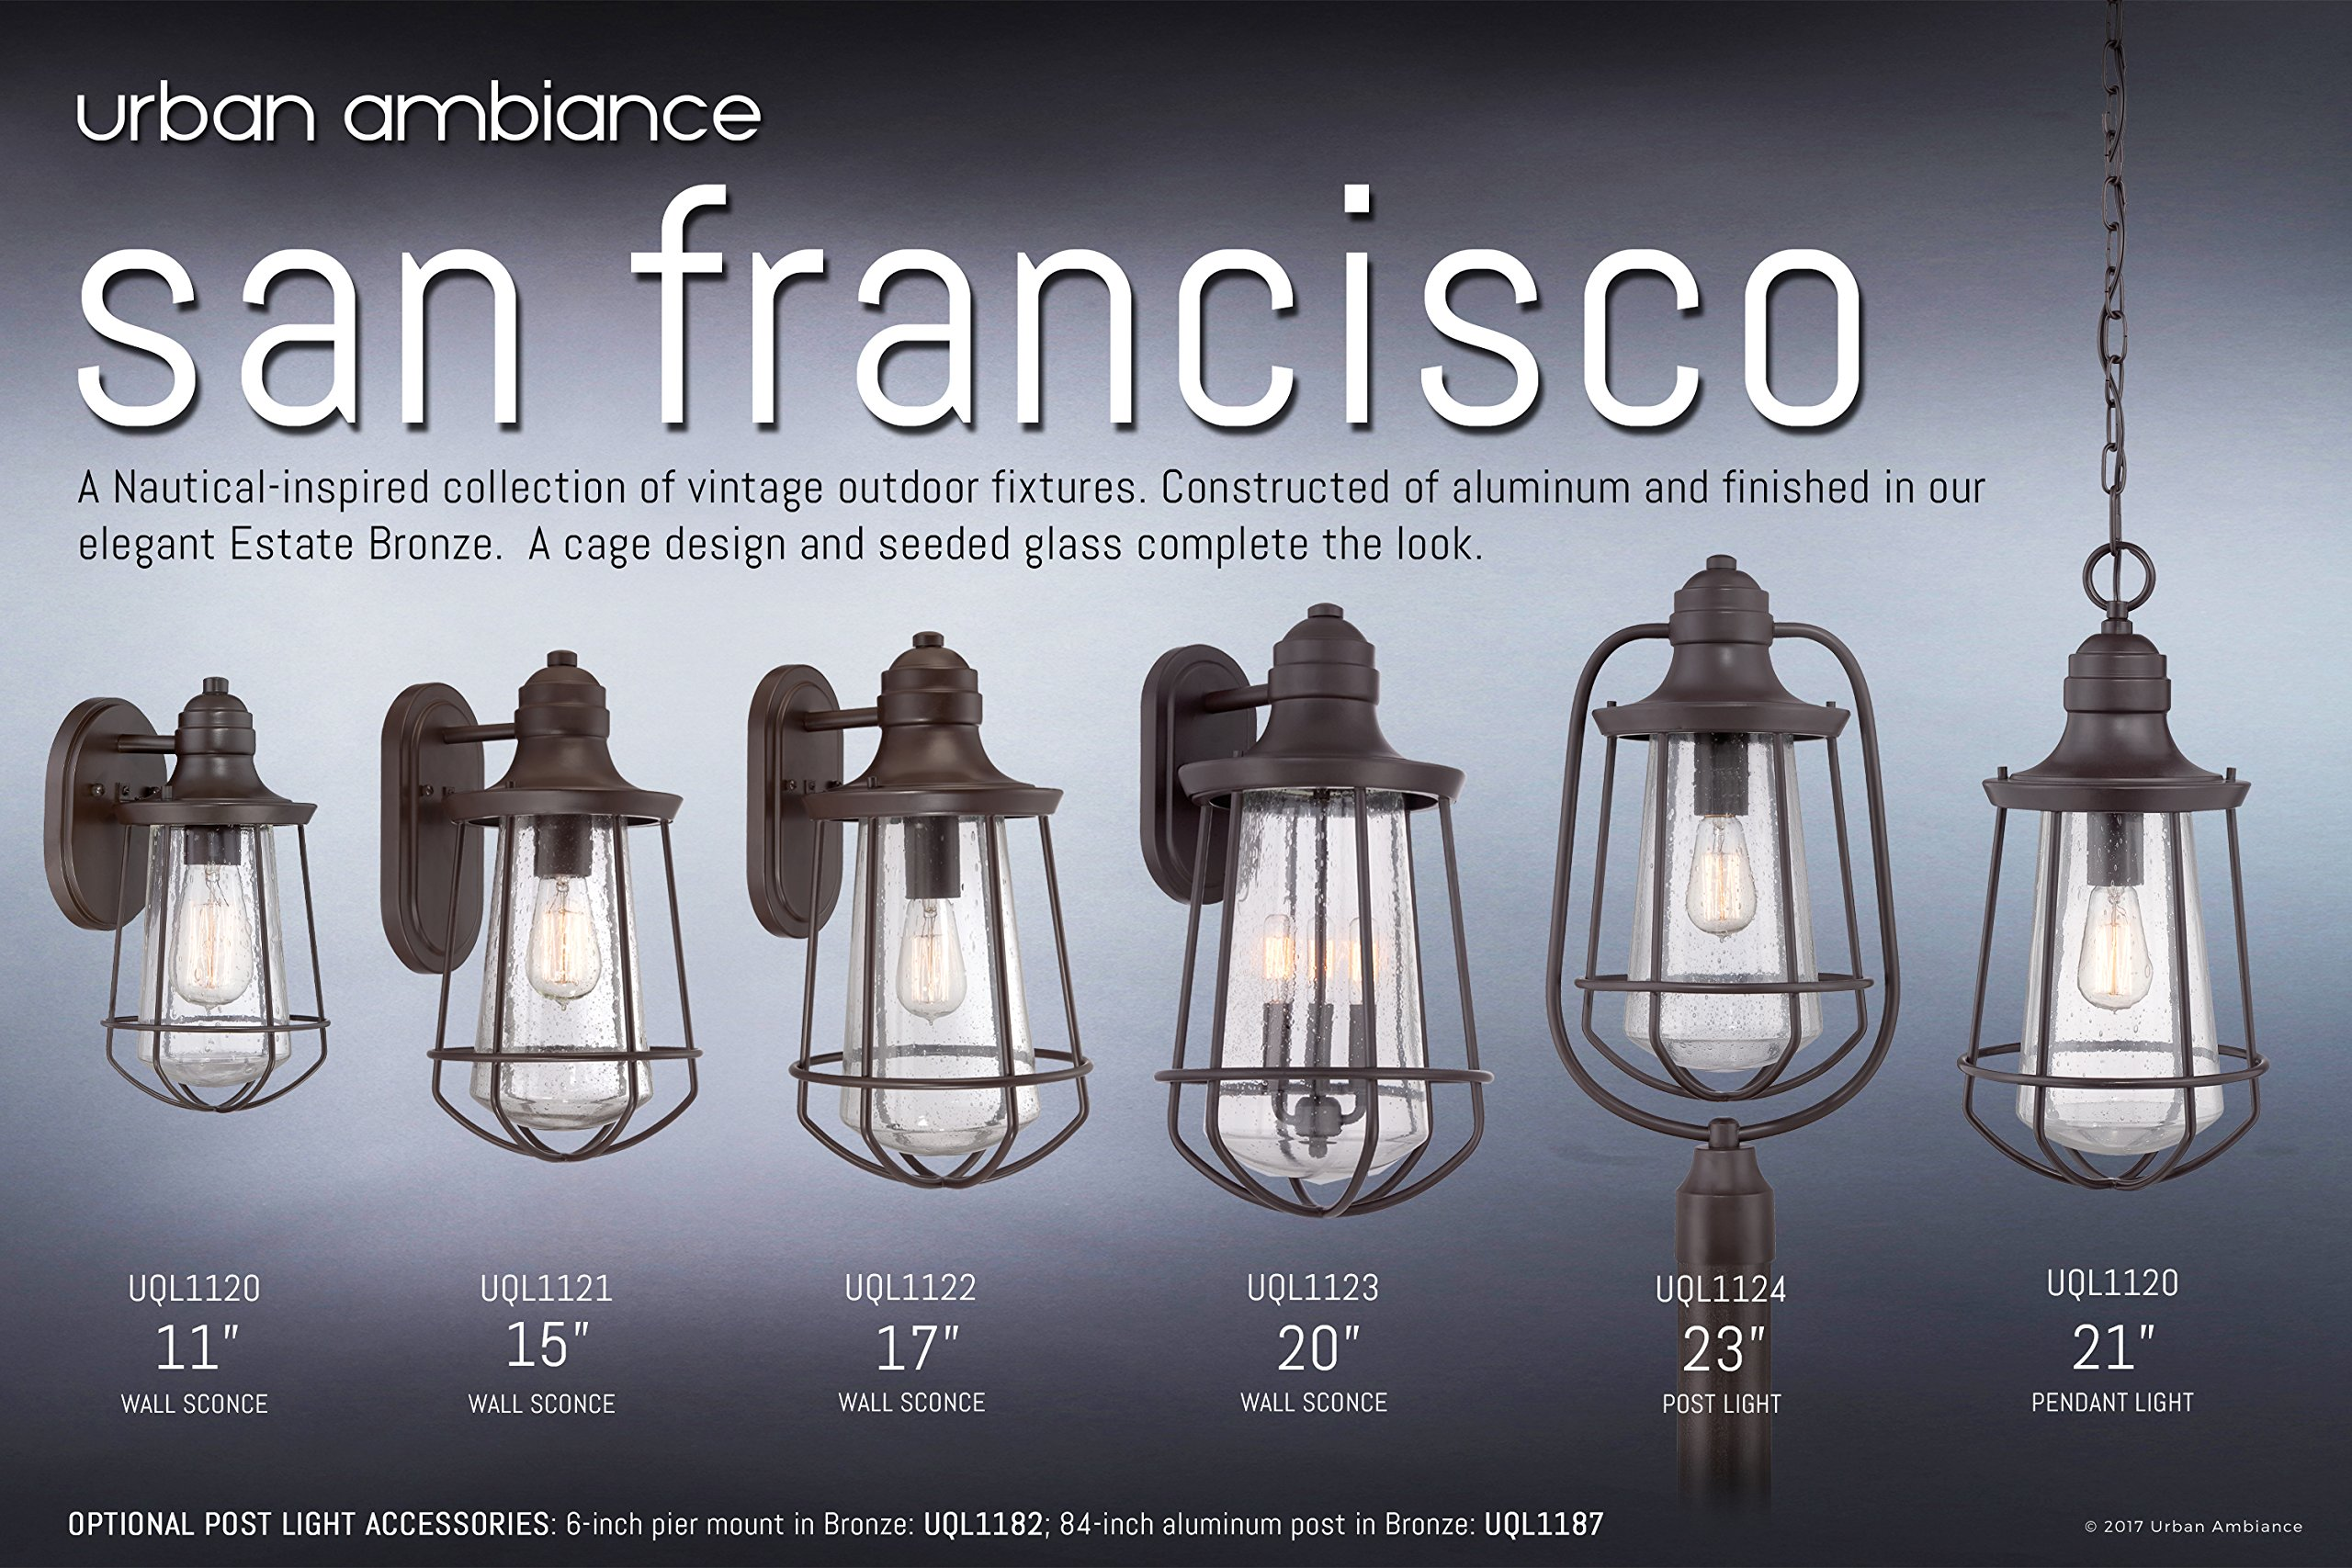 Luxury Vintage Outdoor Wall Light, Medium Size: 15''H x 8.5''W, with Nautical Style Elements, Cage Design, Estate Bronze Finish and Seeded Glass, Includes Edison Bulb, UQL1121 by Urban Ambiance by Urban Ambiance (Image #6)